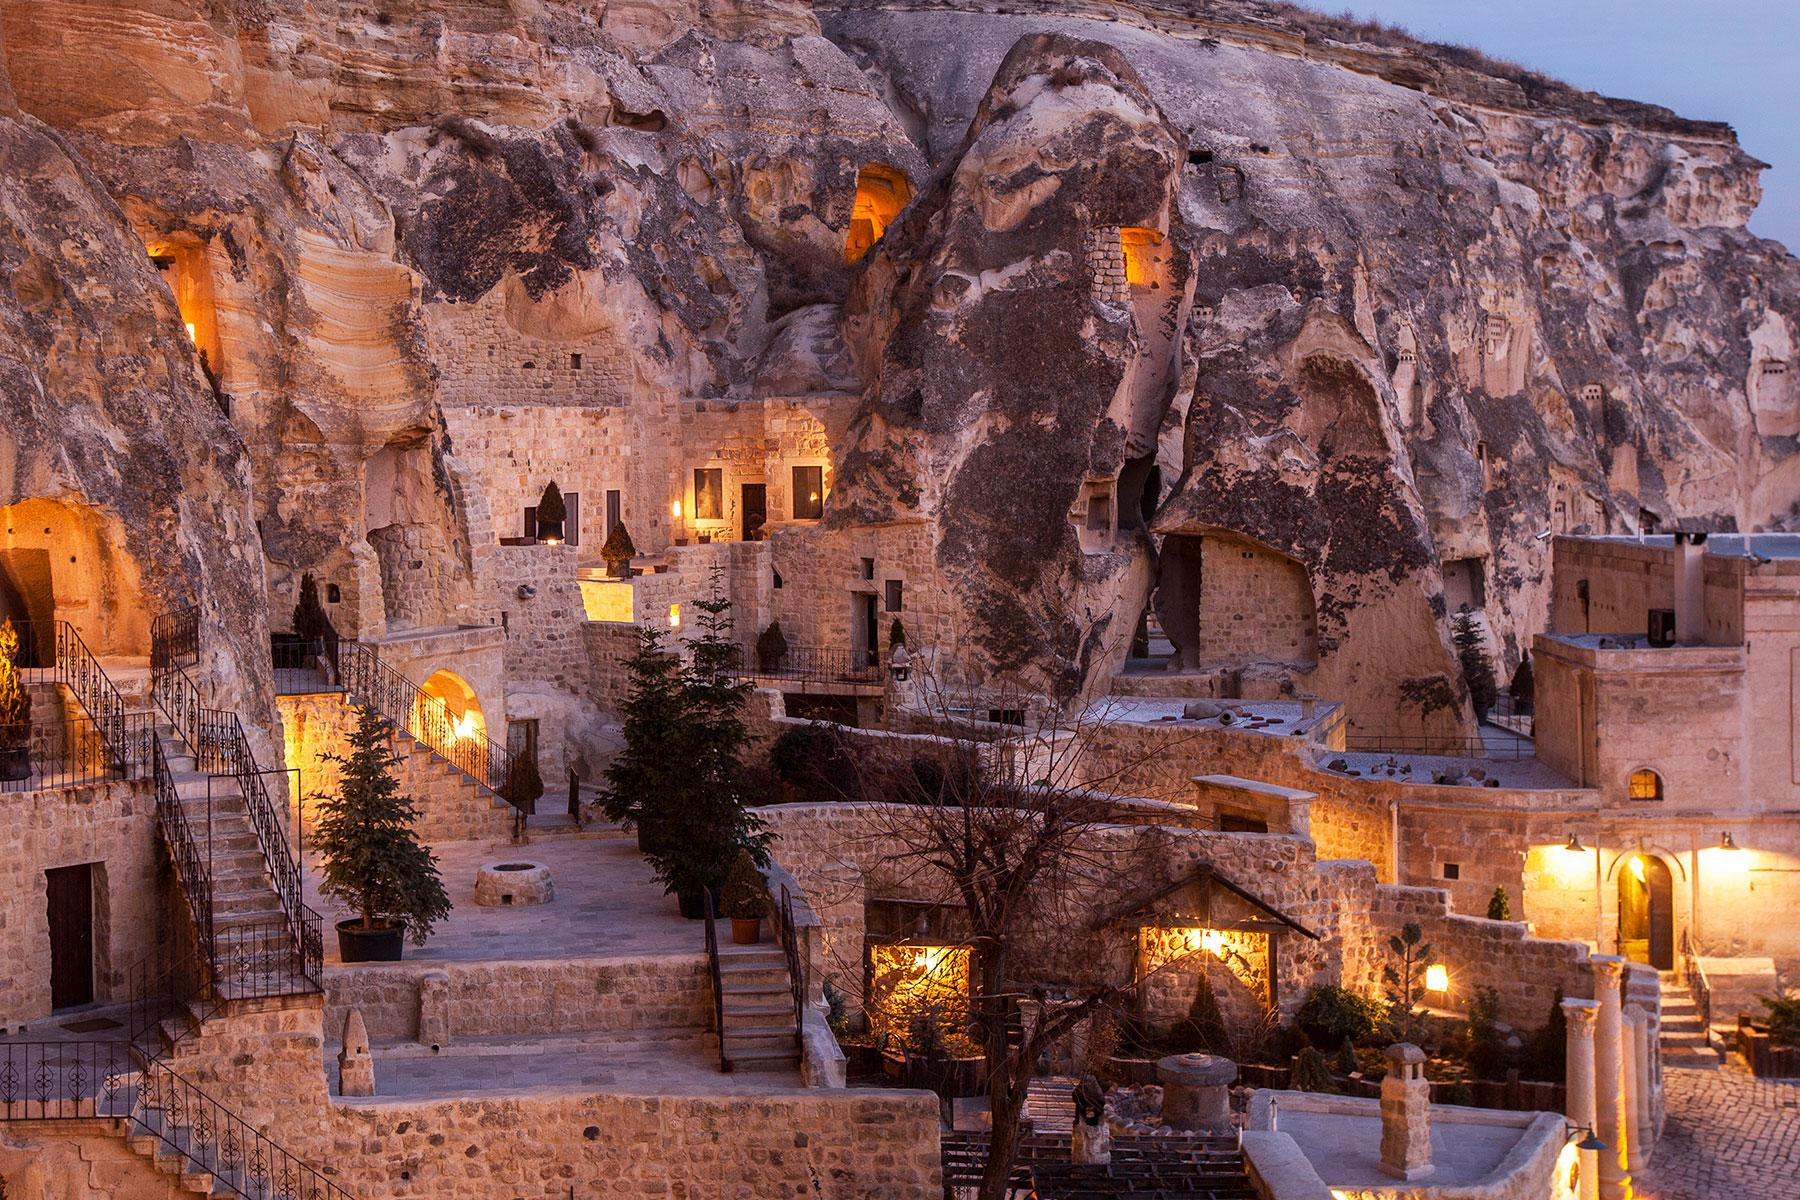 Cliffside Hotels Of The Middle East